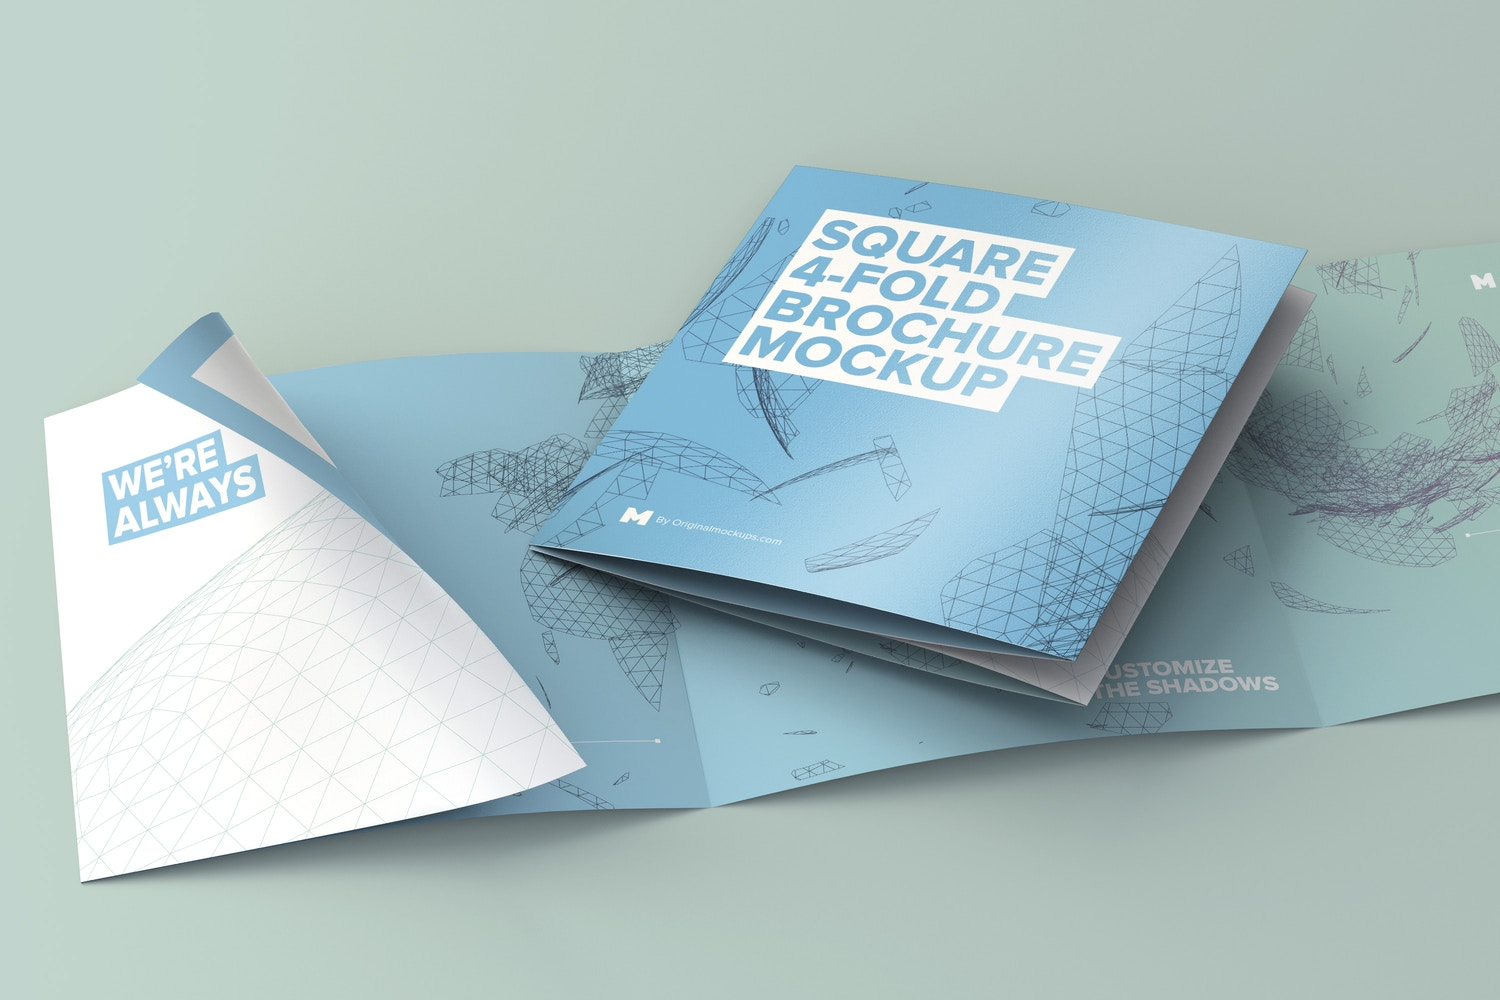 Folded and Unfolded Square 4-Fold-Brochure Mockup - Custom Background